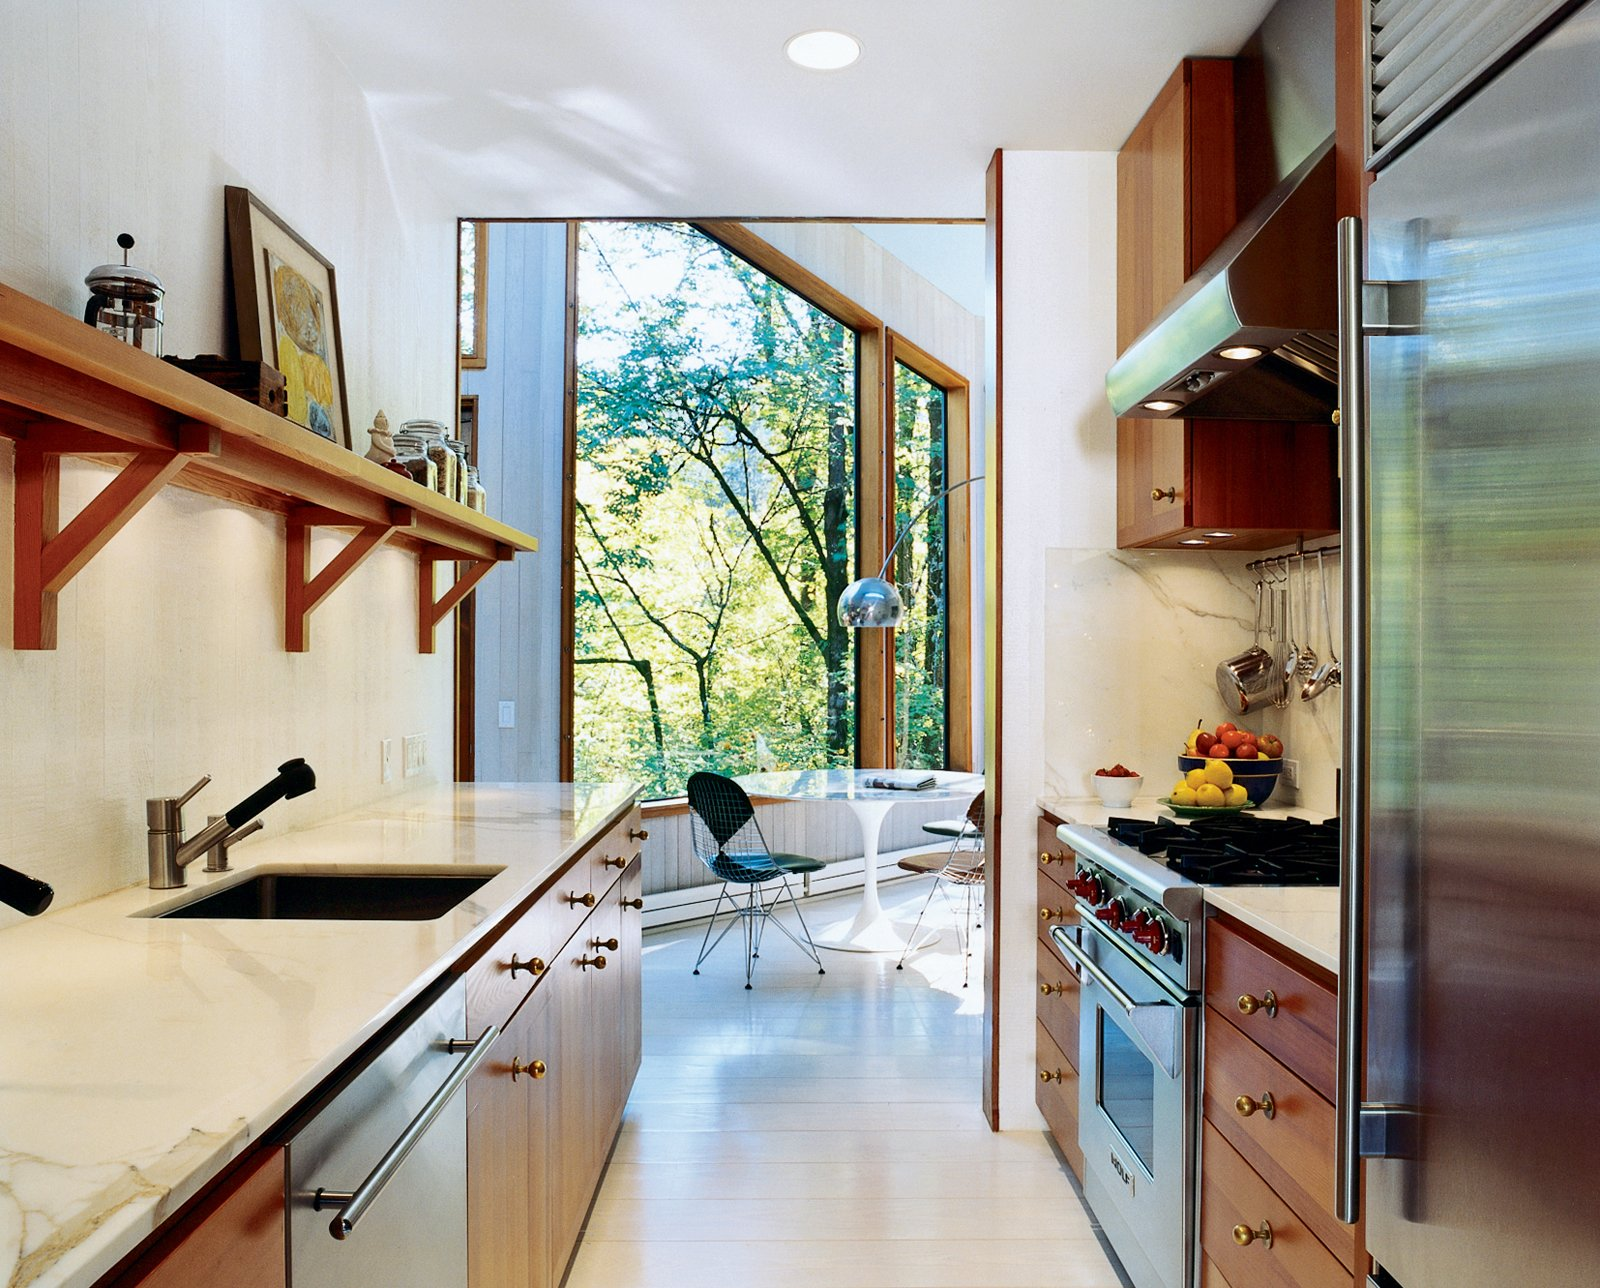 To brighten the kitchen, which was once the darkest room, Watson and Tschopp decided on a glossy white finish, painted directly on the same rough-cut cedar paneling used throughout the house. This maintains the consistency of materials and texture, while reflecting light and enhancing the natural illumination. Stainless steel appliances and vintage bronze hardware add luster. Super White semigloss (walls) and Old Pick Up Blue (ceilings) are by Benjamin Moore.